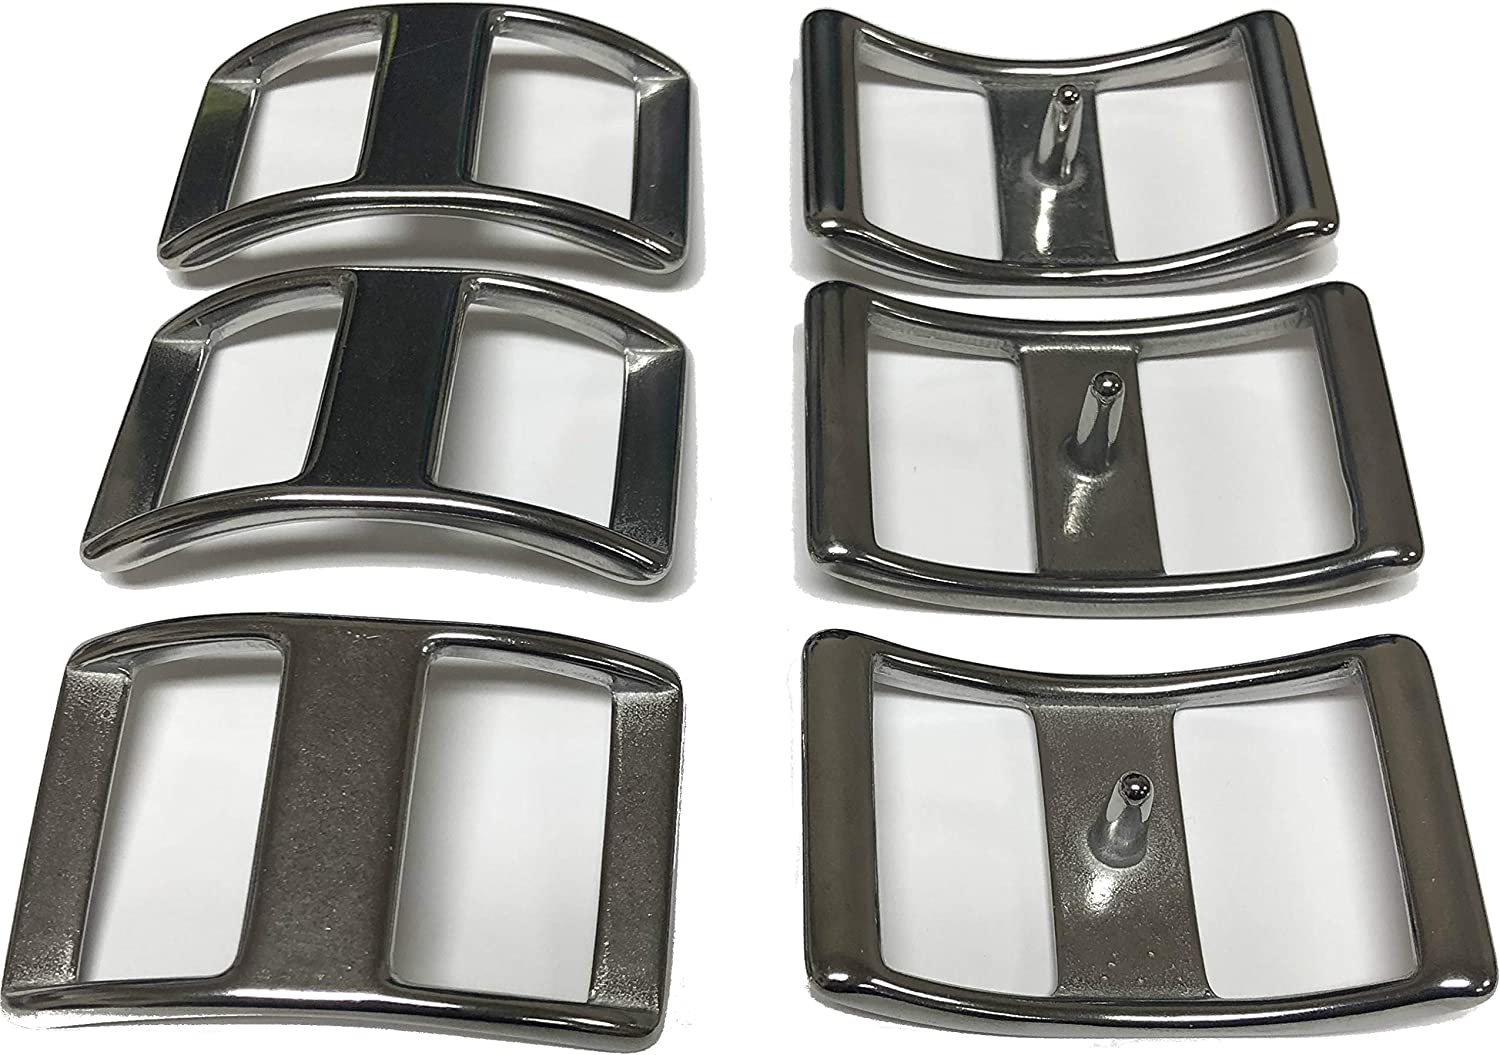 "Lot of 6 Roller Buckles Stainless Steel 150 Horse Tack 3//4 /"" Weaver Leather New"